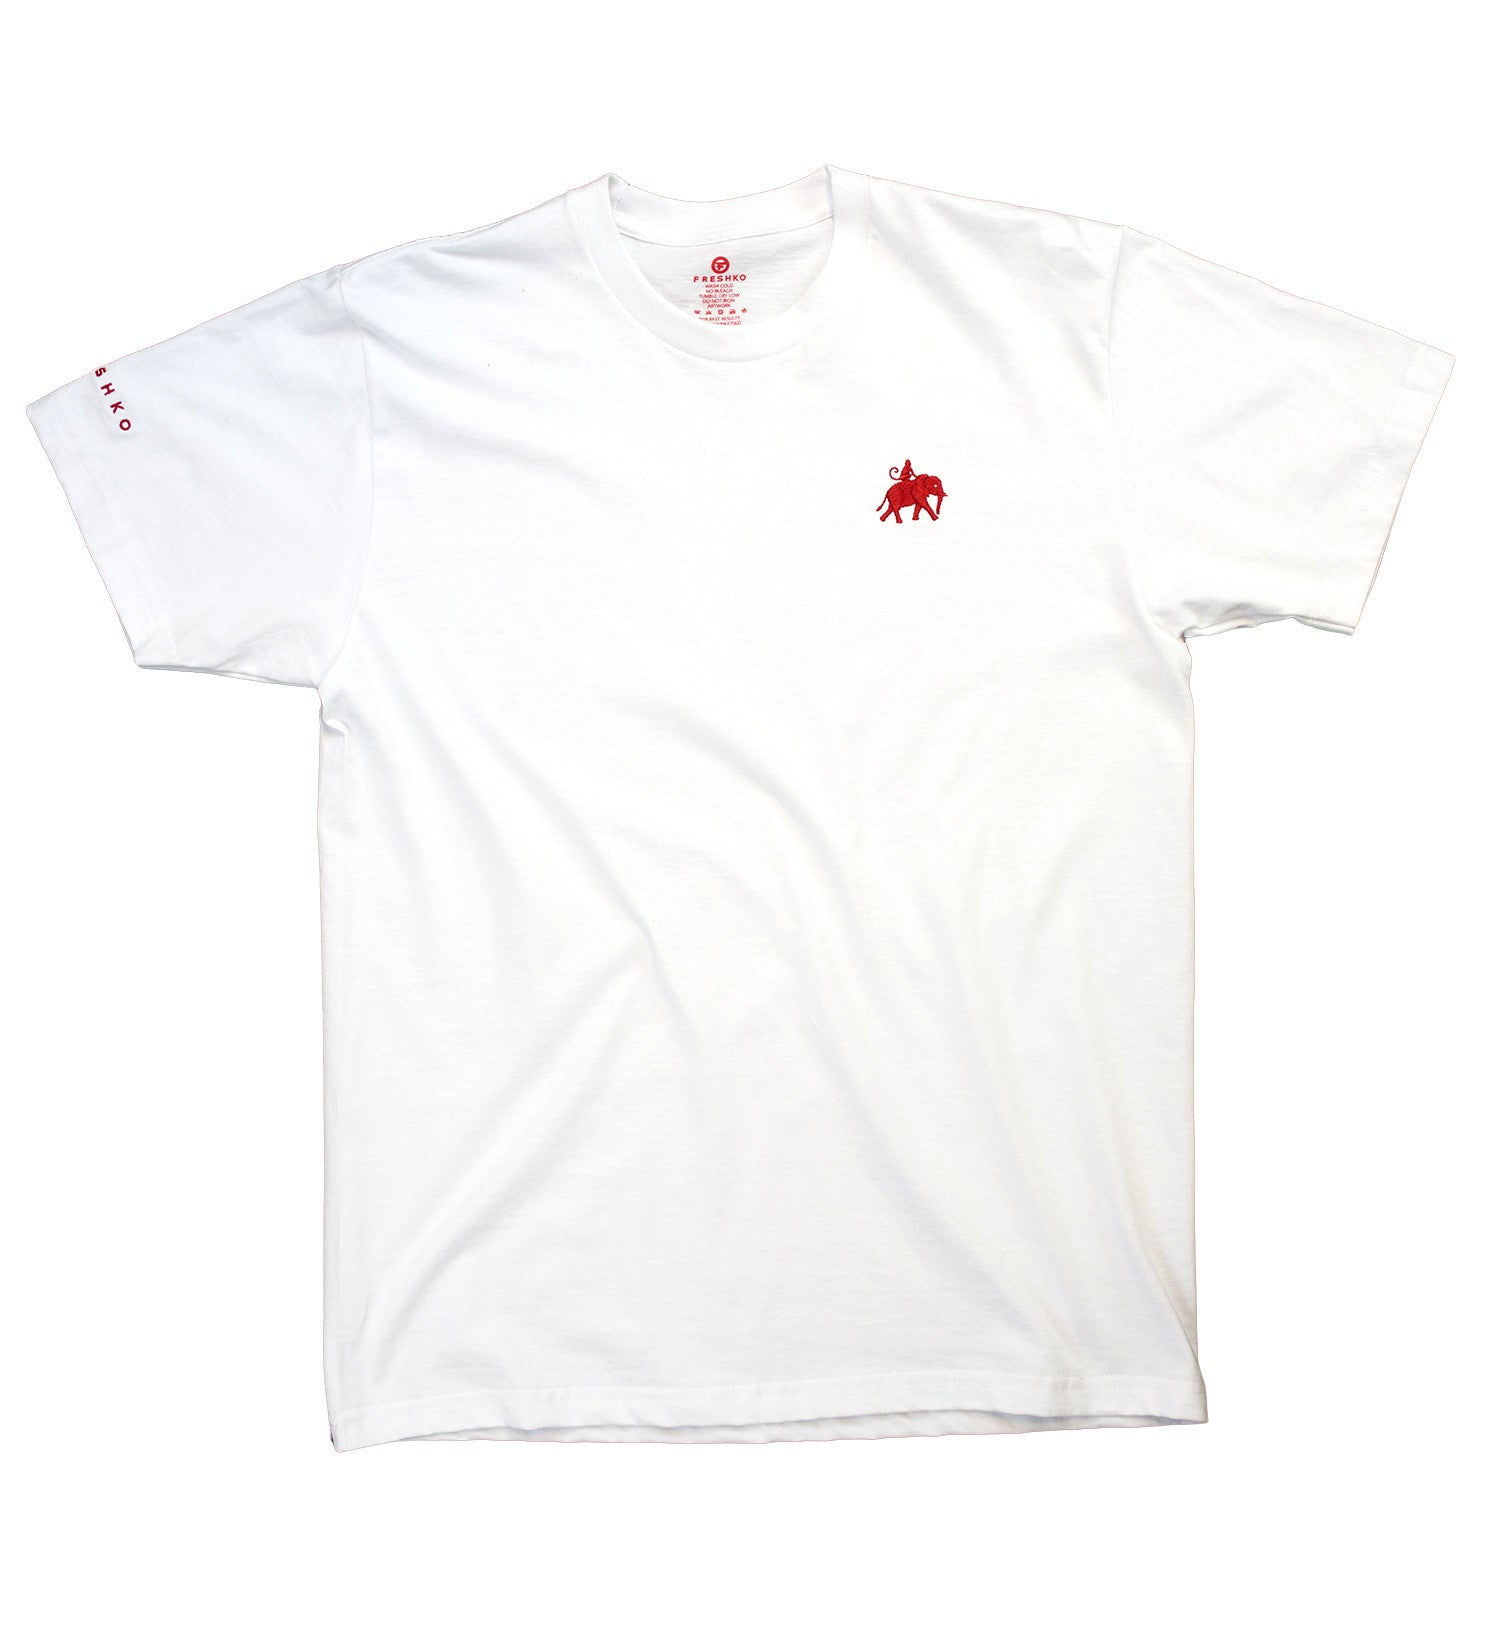 White Embroidered Tee